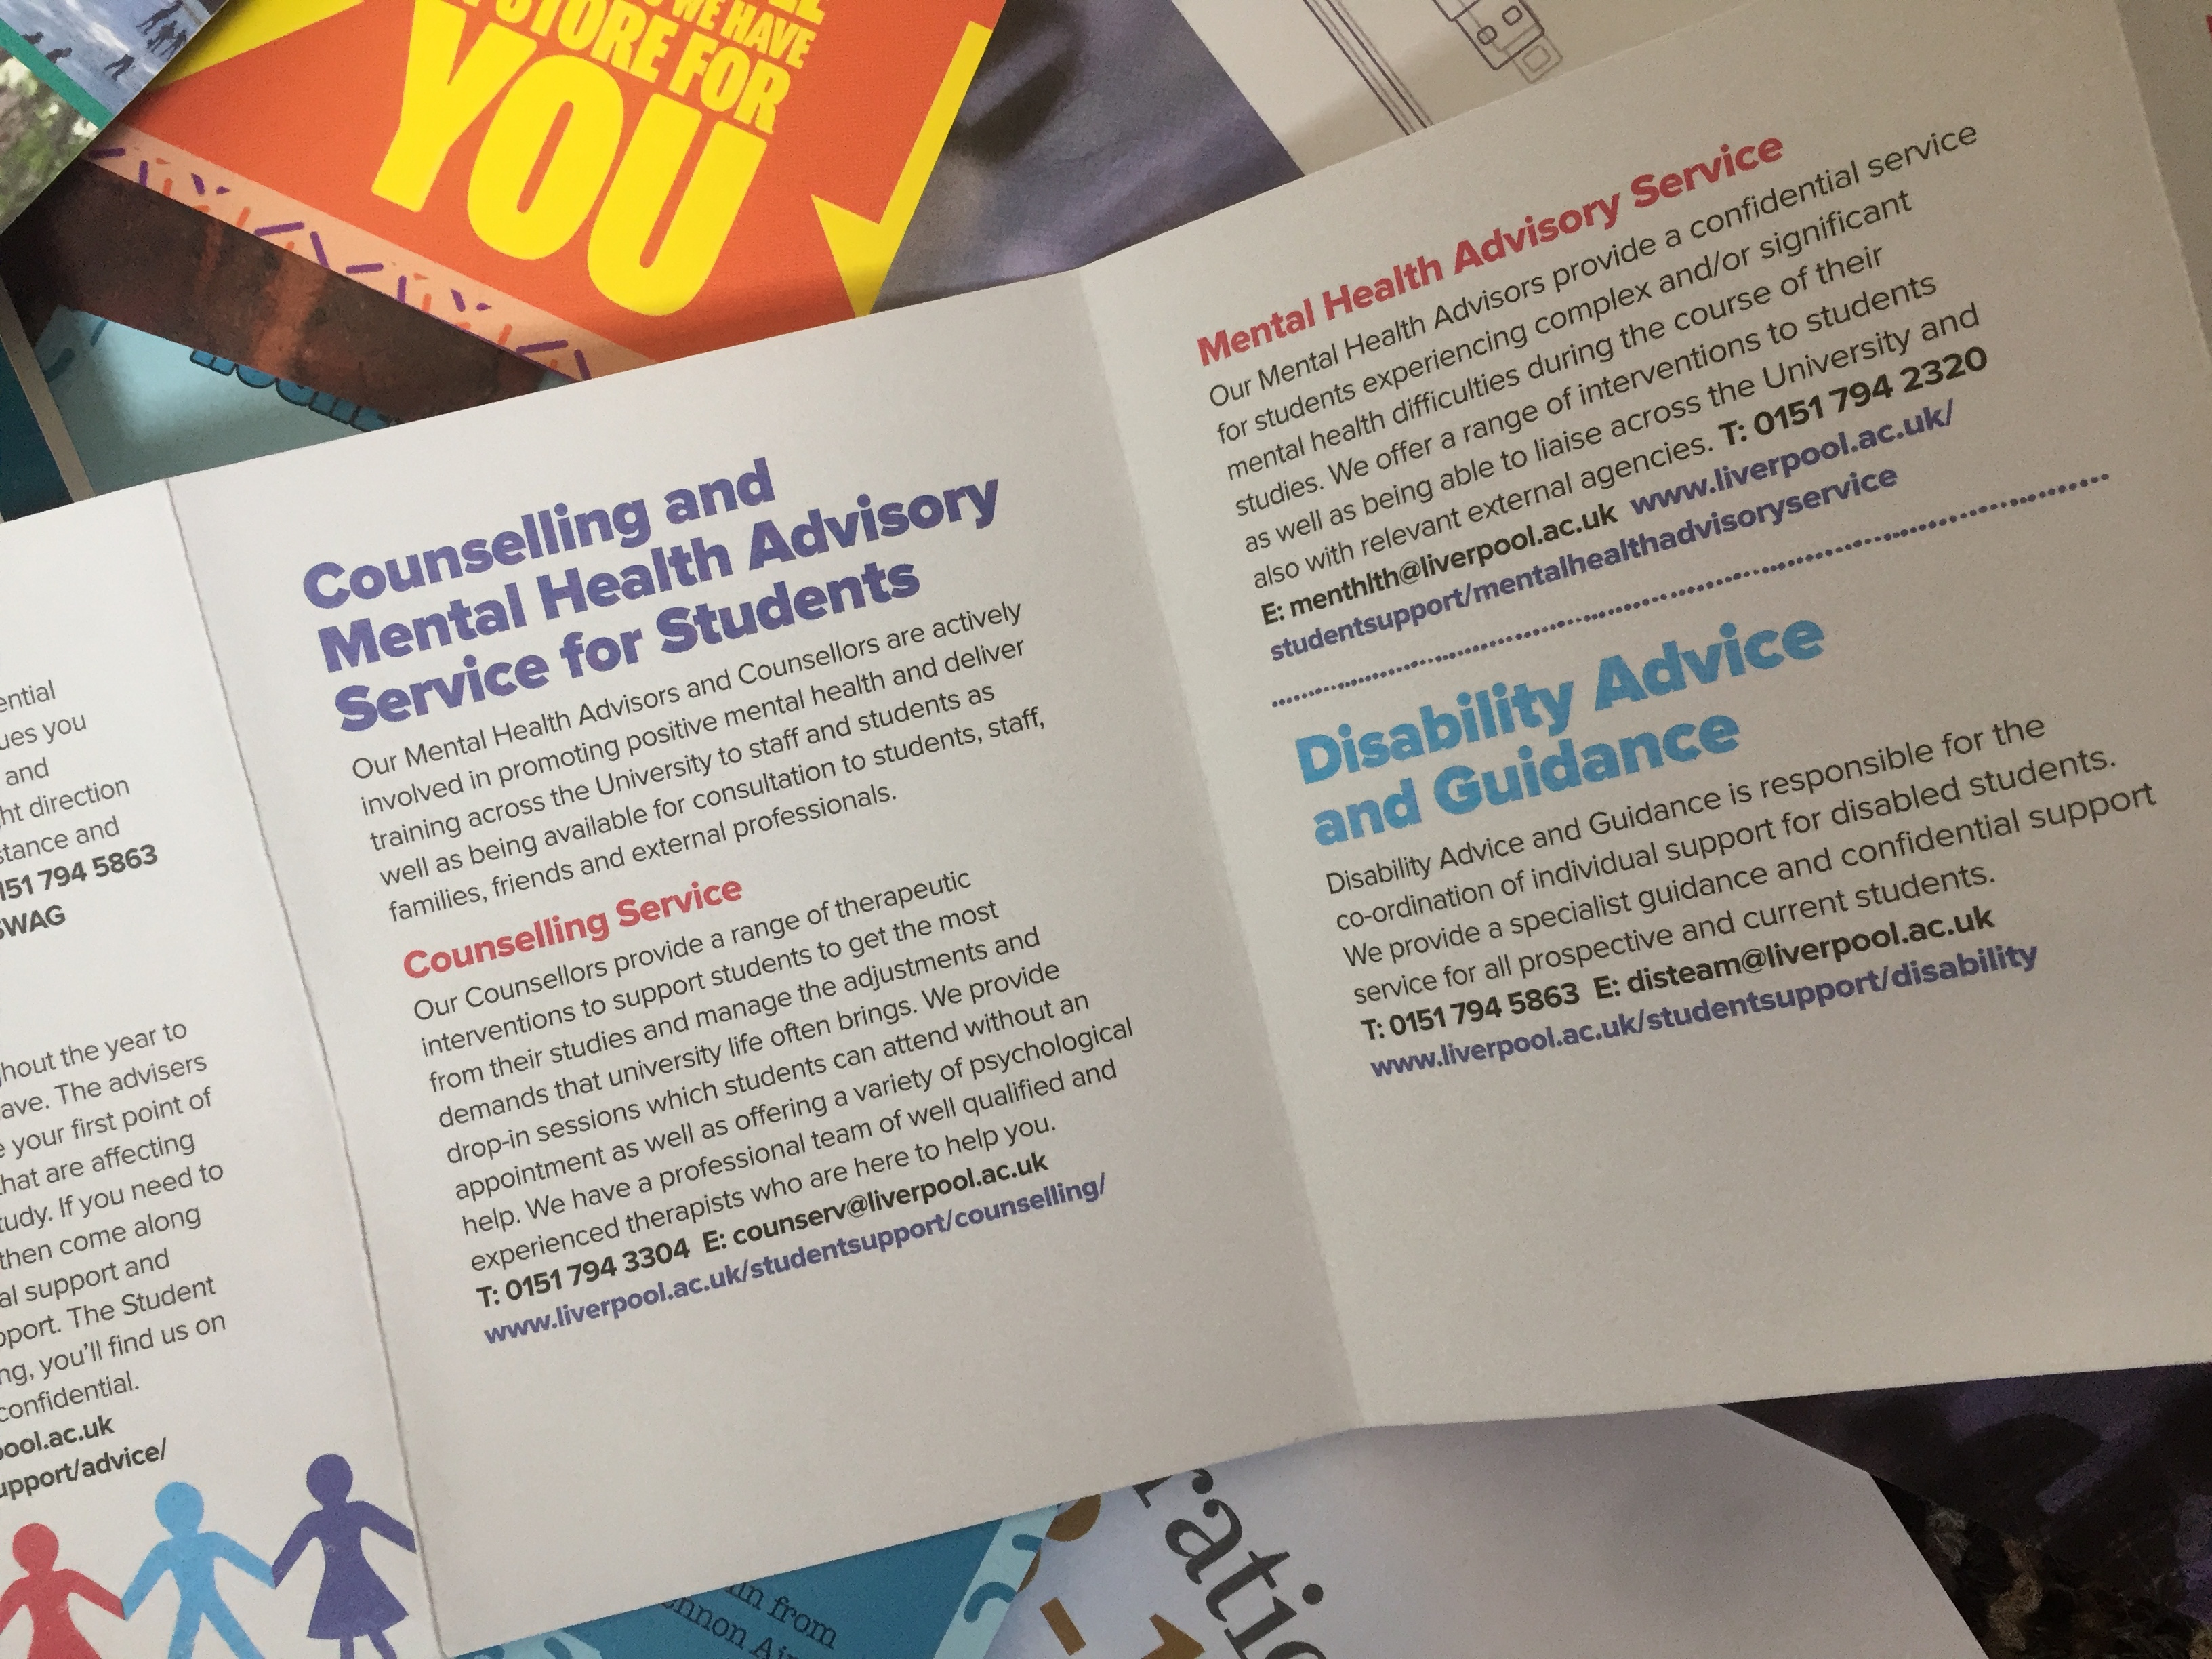 Brochure for university students to advertise counselling services and disability advice